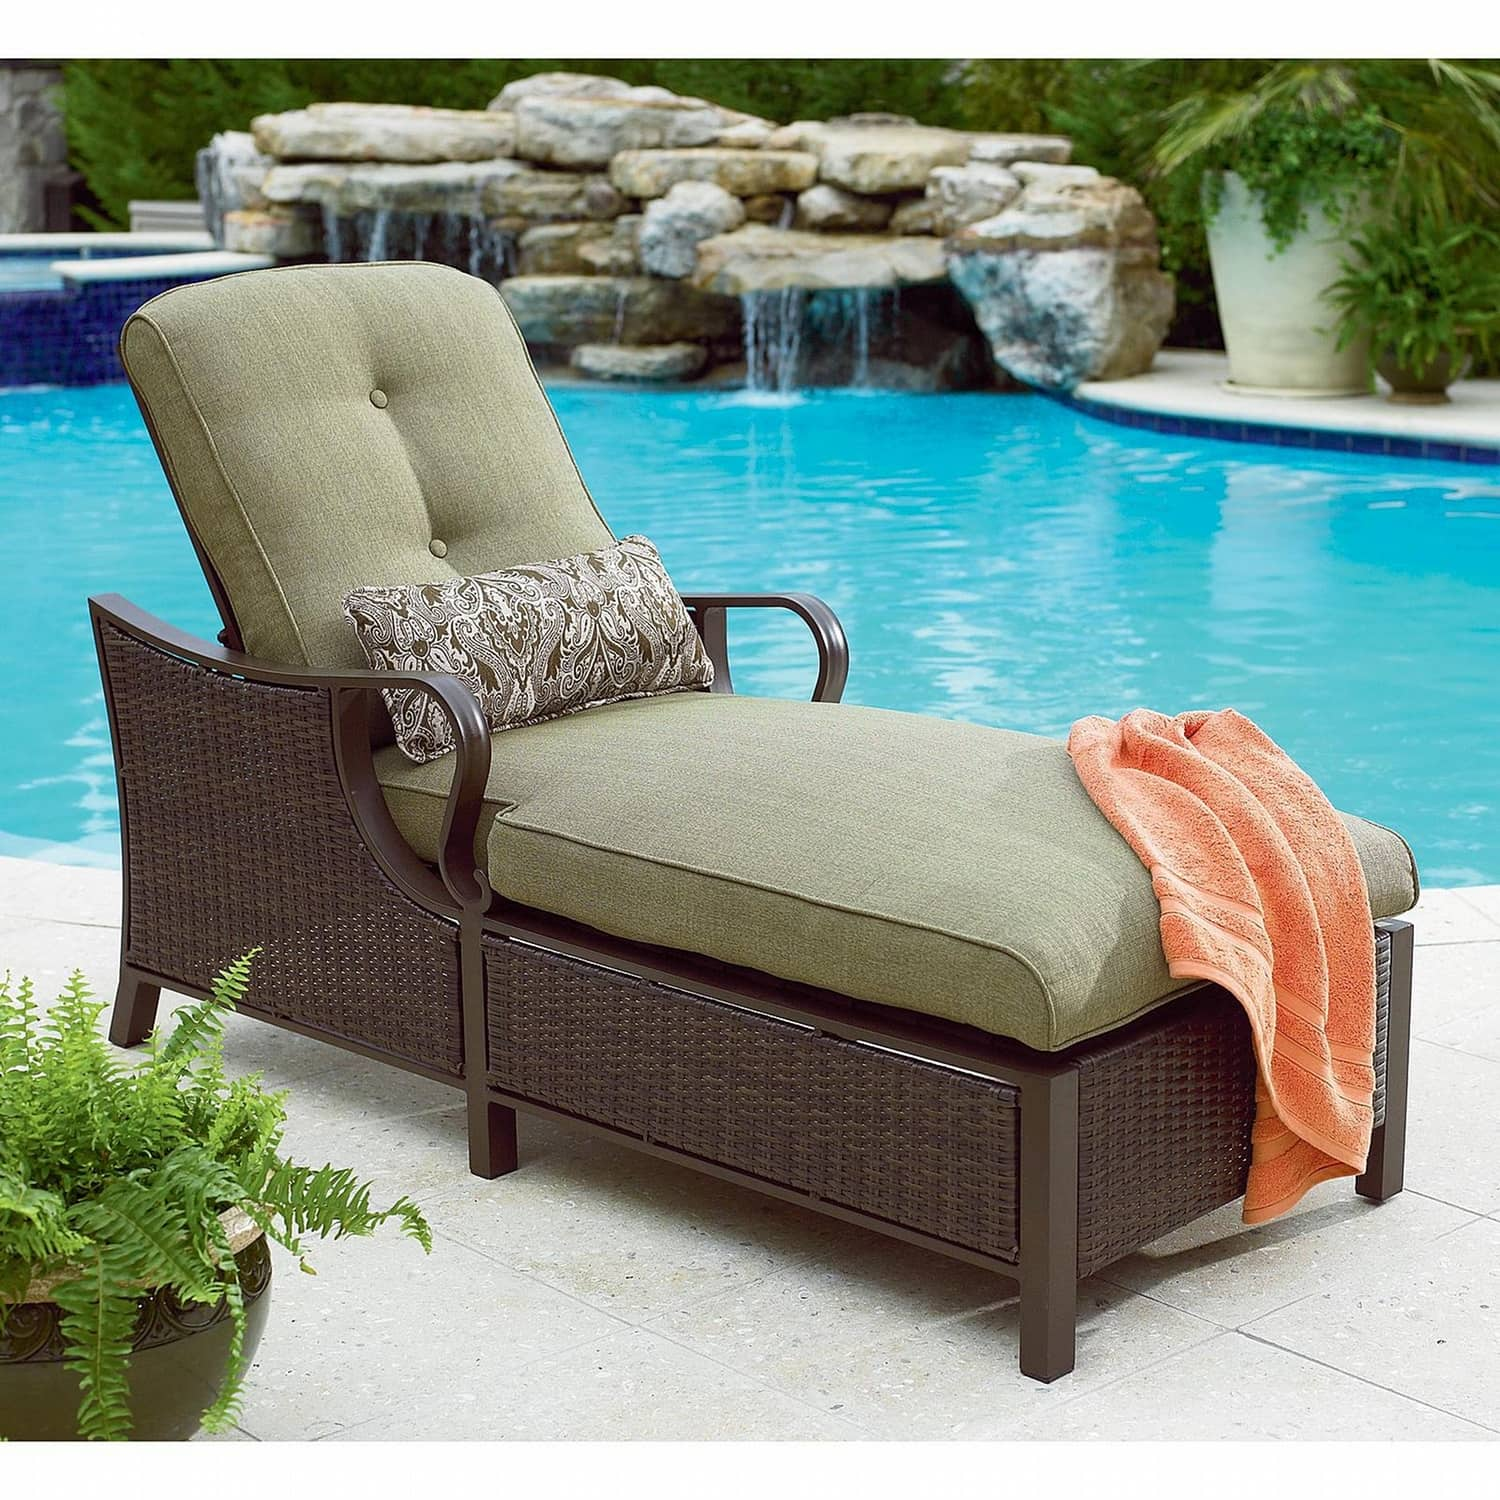 Chais Lounge Leisure Chairs for Indoor and Outdoor Relaxation and Style. Lazy boy chaise lounge with wicker base at the pool